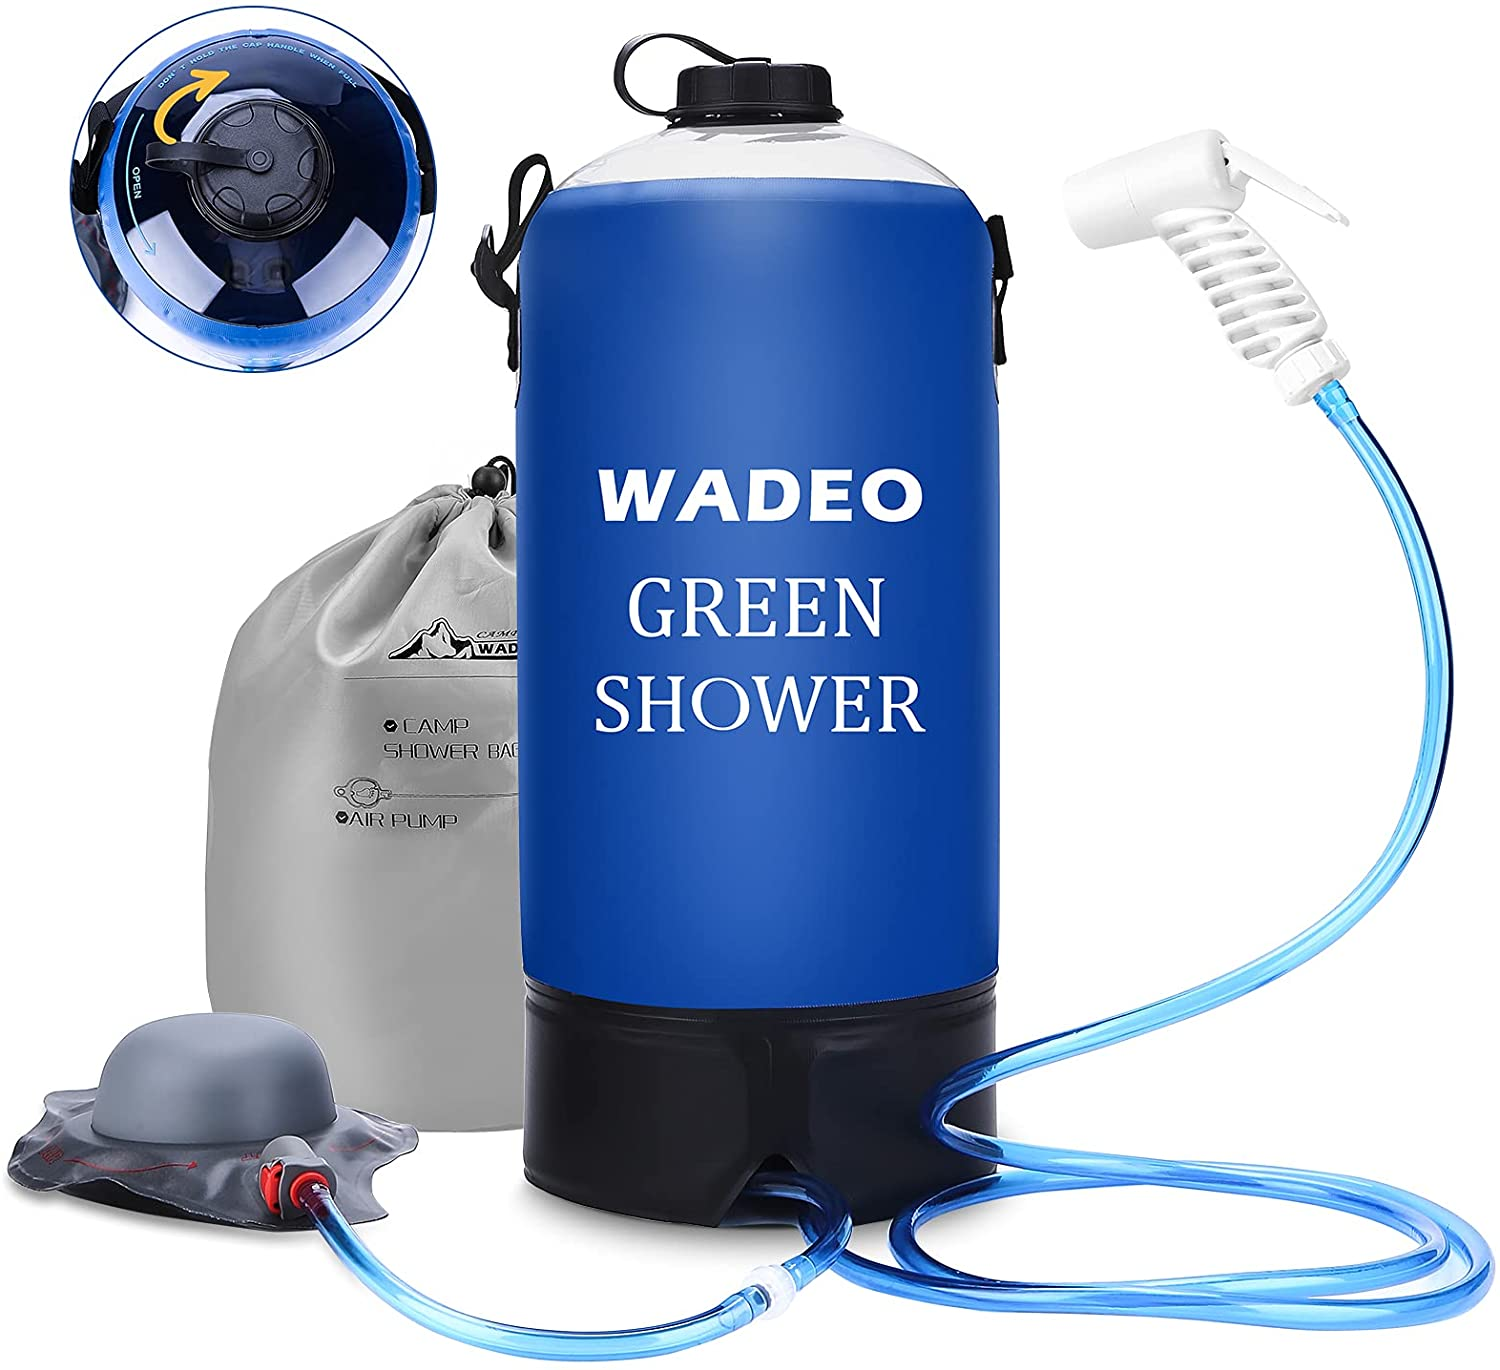 WADEO Upgrade Camping Shower Ranking TOP4 12L Pressure Gallons Ca 3 Denver Mall Portable